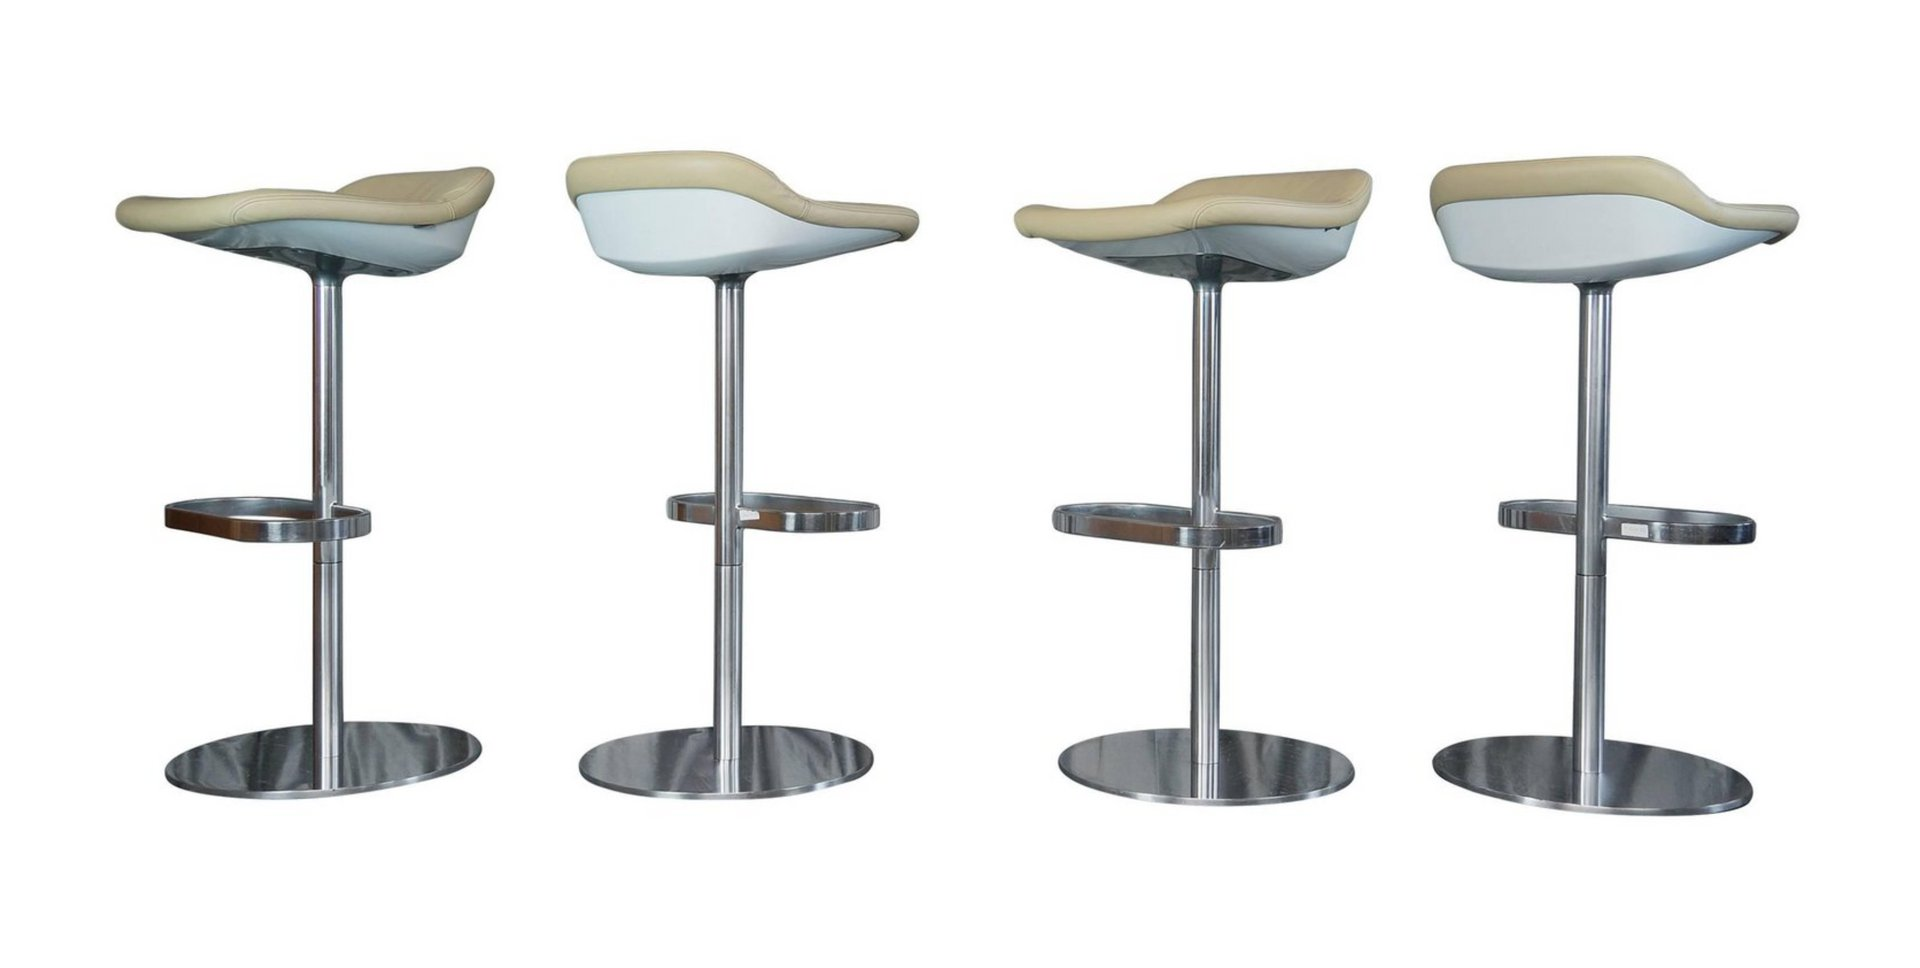 Cream Leather Turtle Bar Stools By Pearsonlloyd For Walter